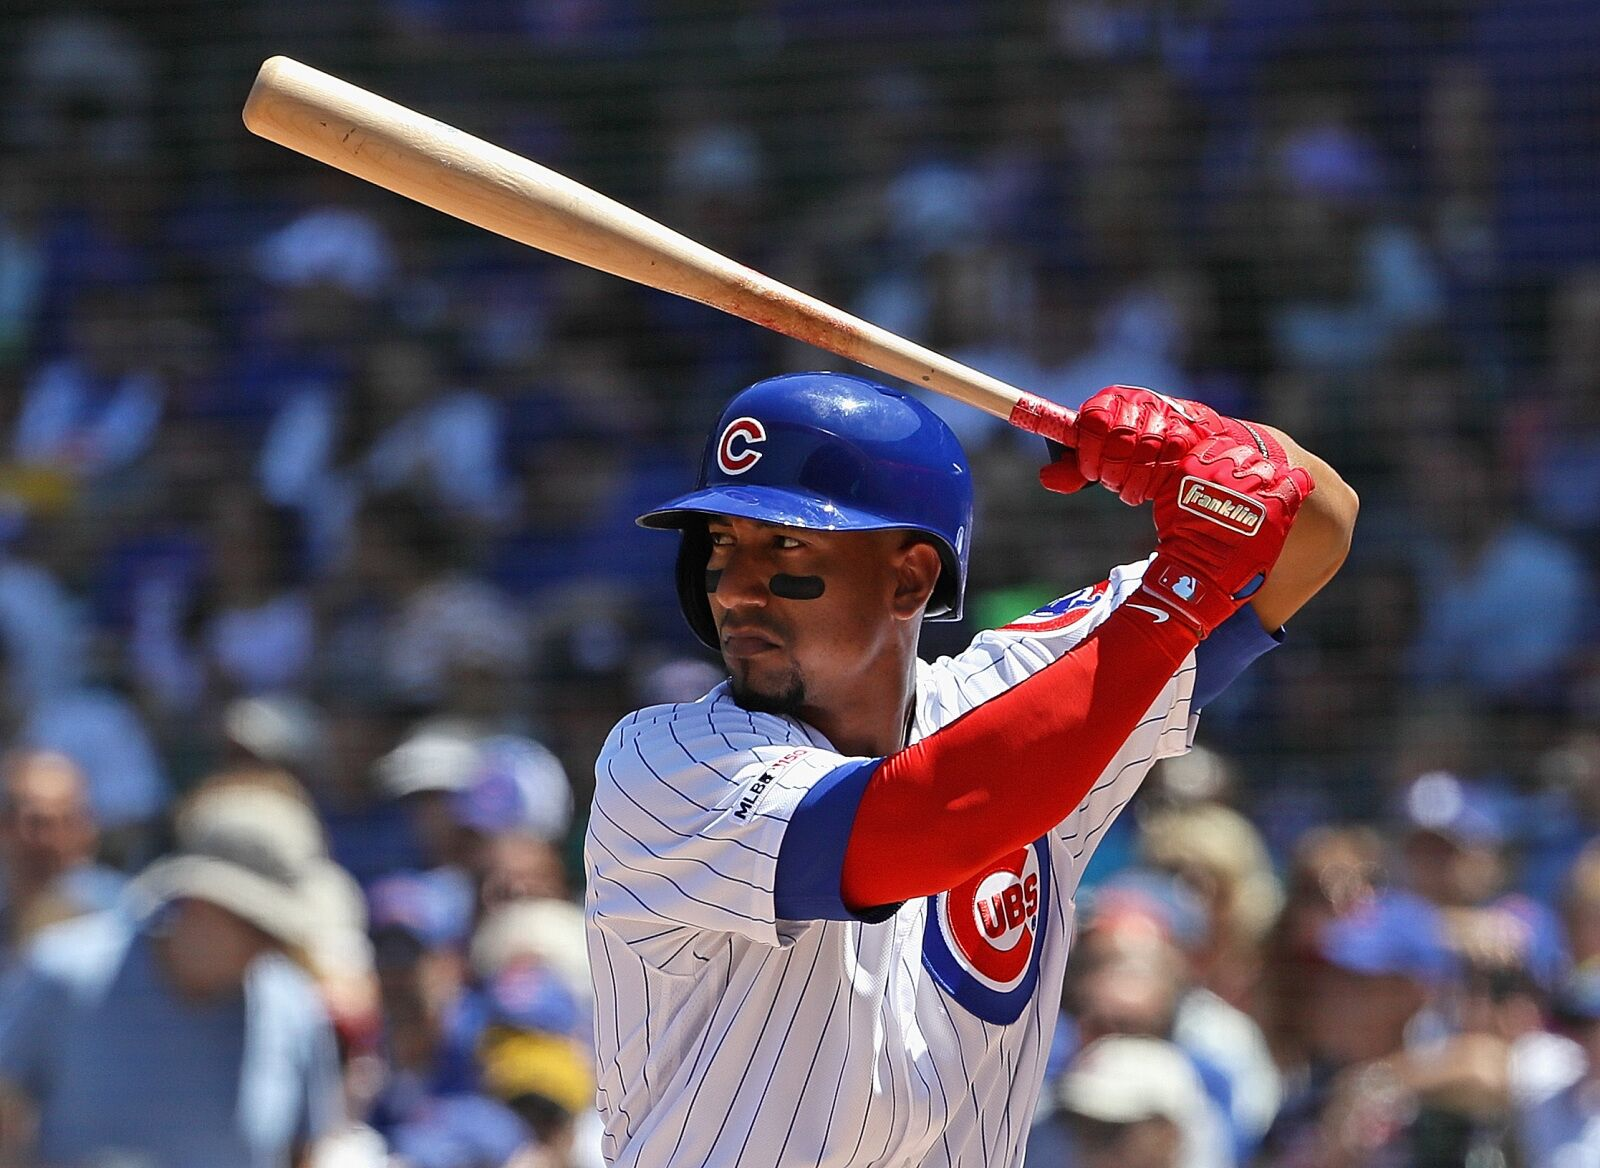 Chicago Cubs: Robel Garcia earns honors, soon a call up